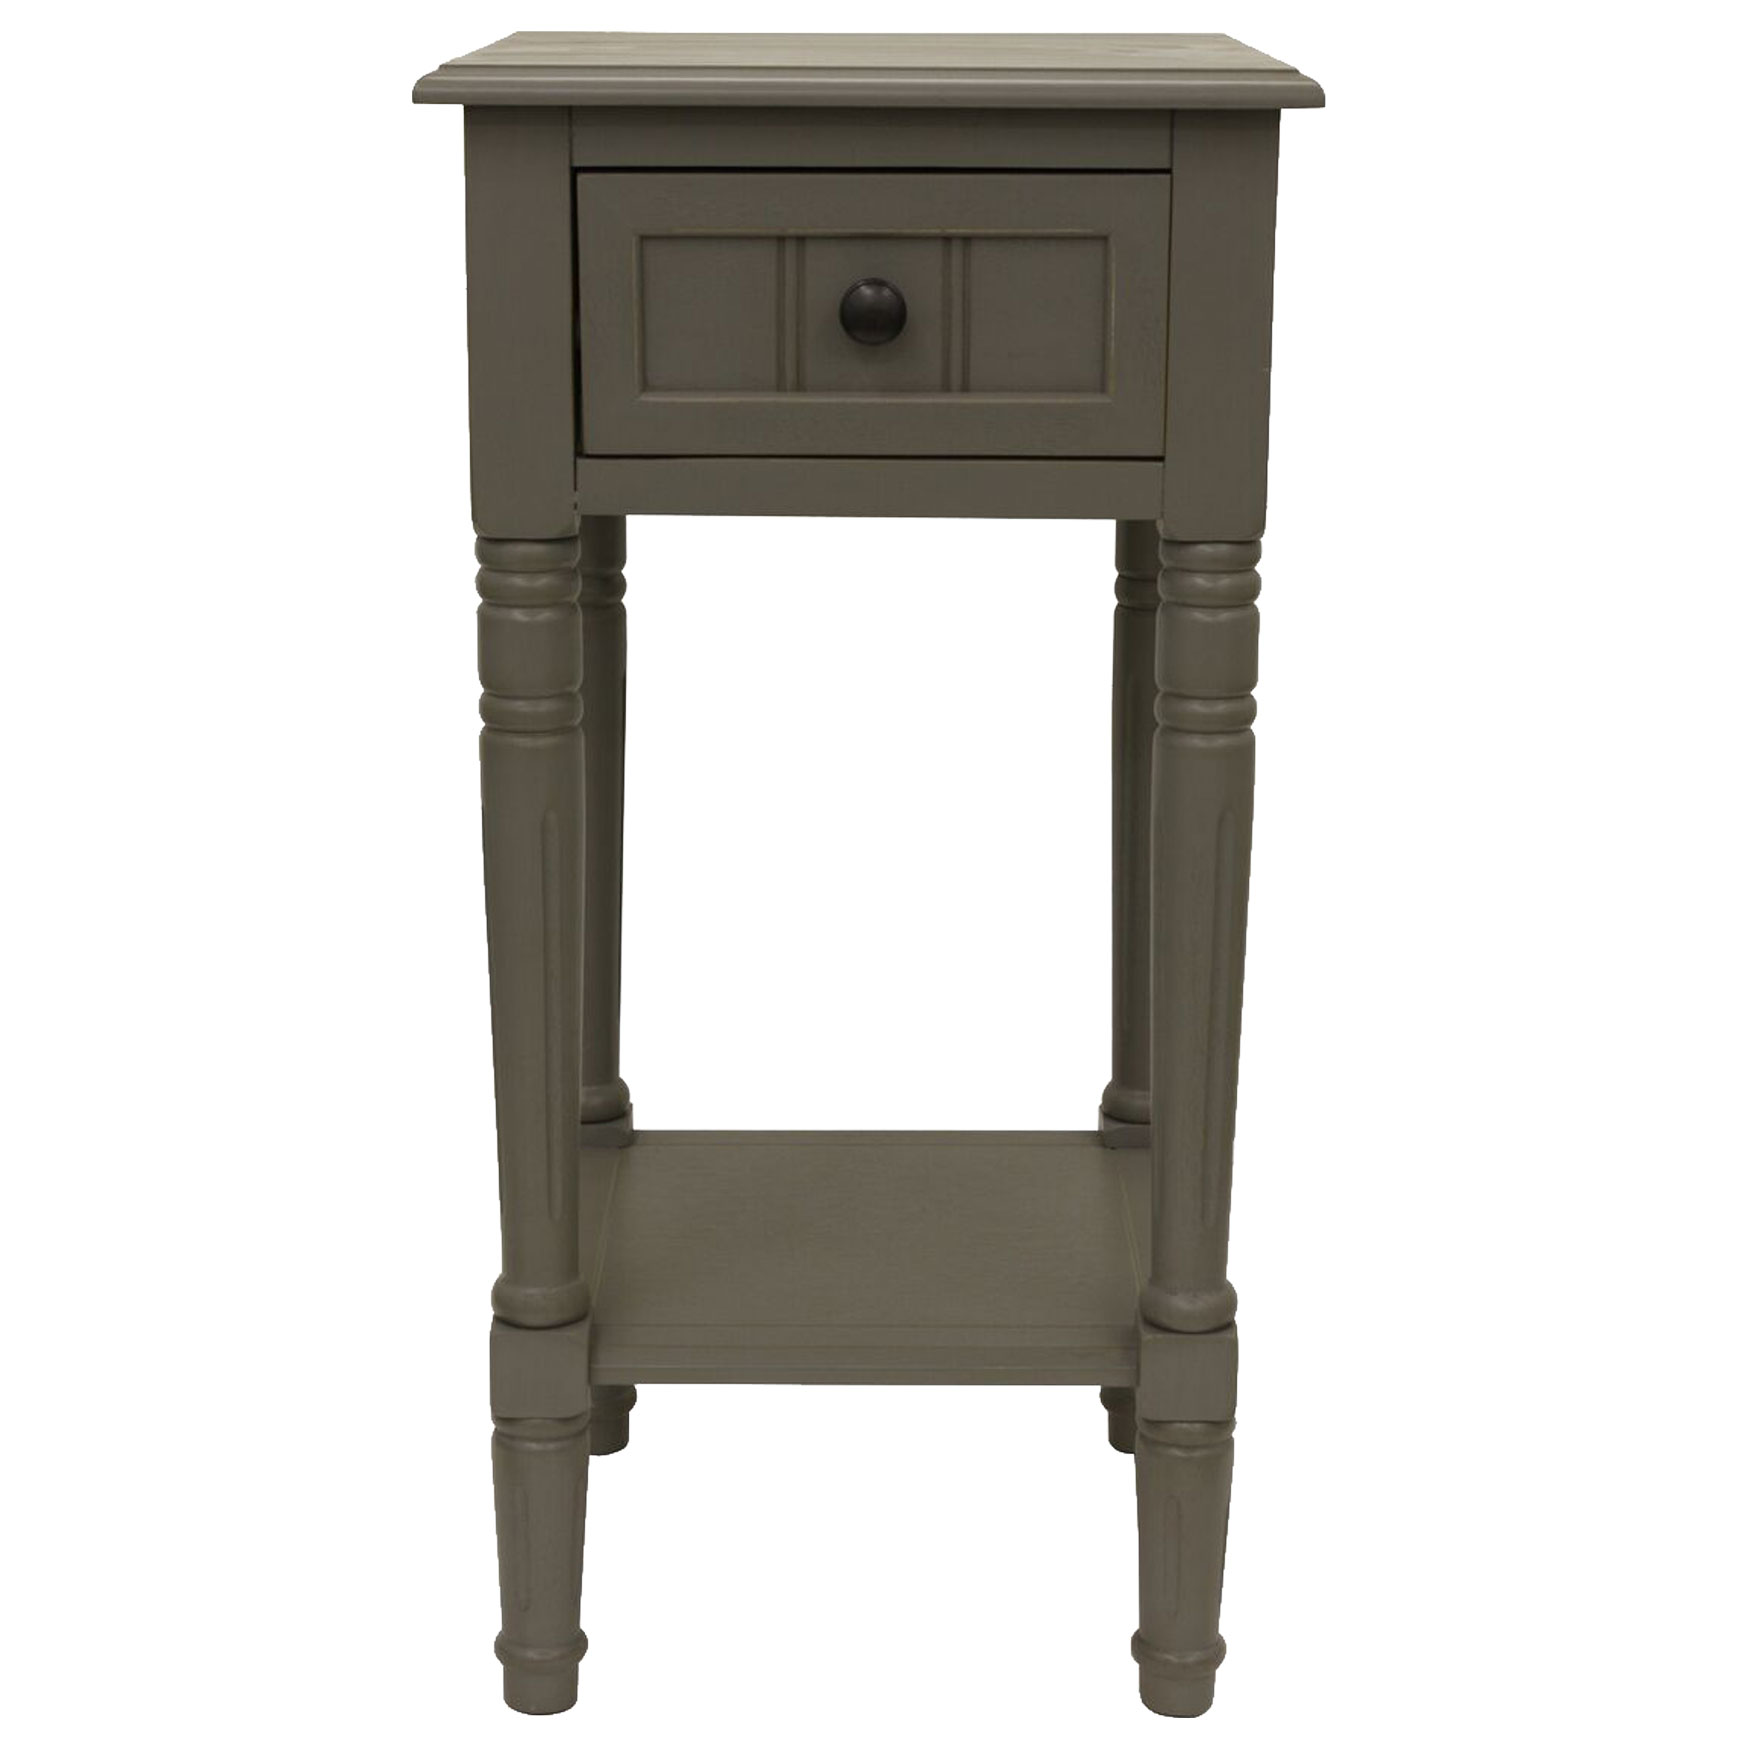 Chic Accent Table, GRAY